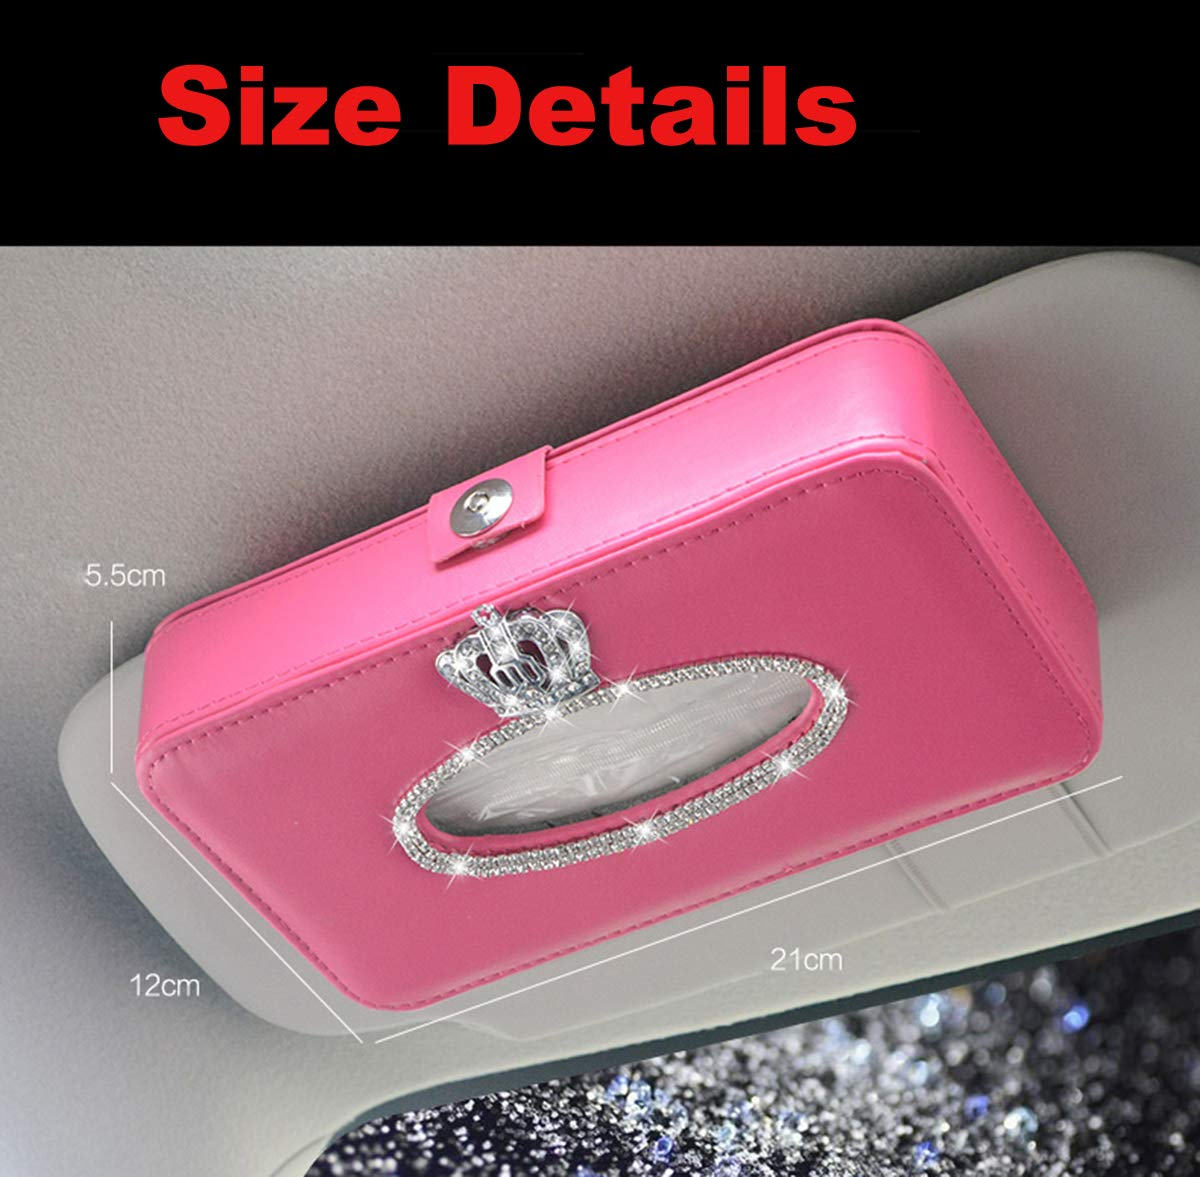 MLOVESIE Leather Auto Gear Shift Knob Cover with Crystal Bling Bling Rhinestones for Girls,Lady Universal Fit